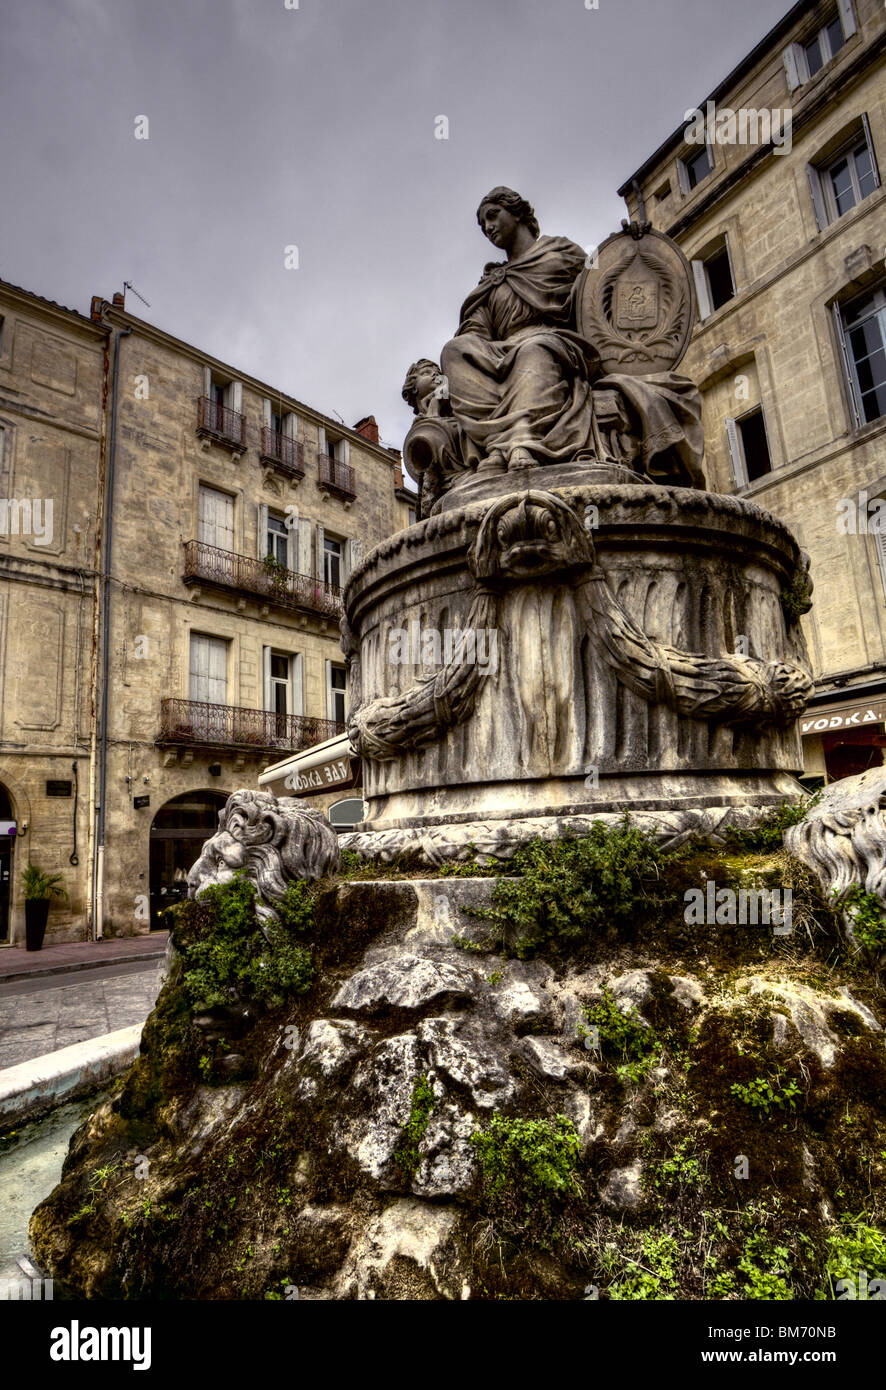 Ancient statue-fountain in Montpellier, France - Stock Image